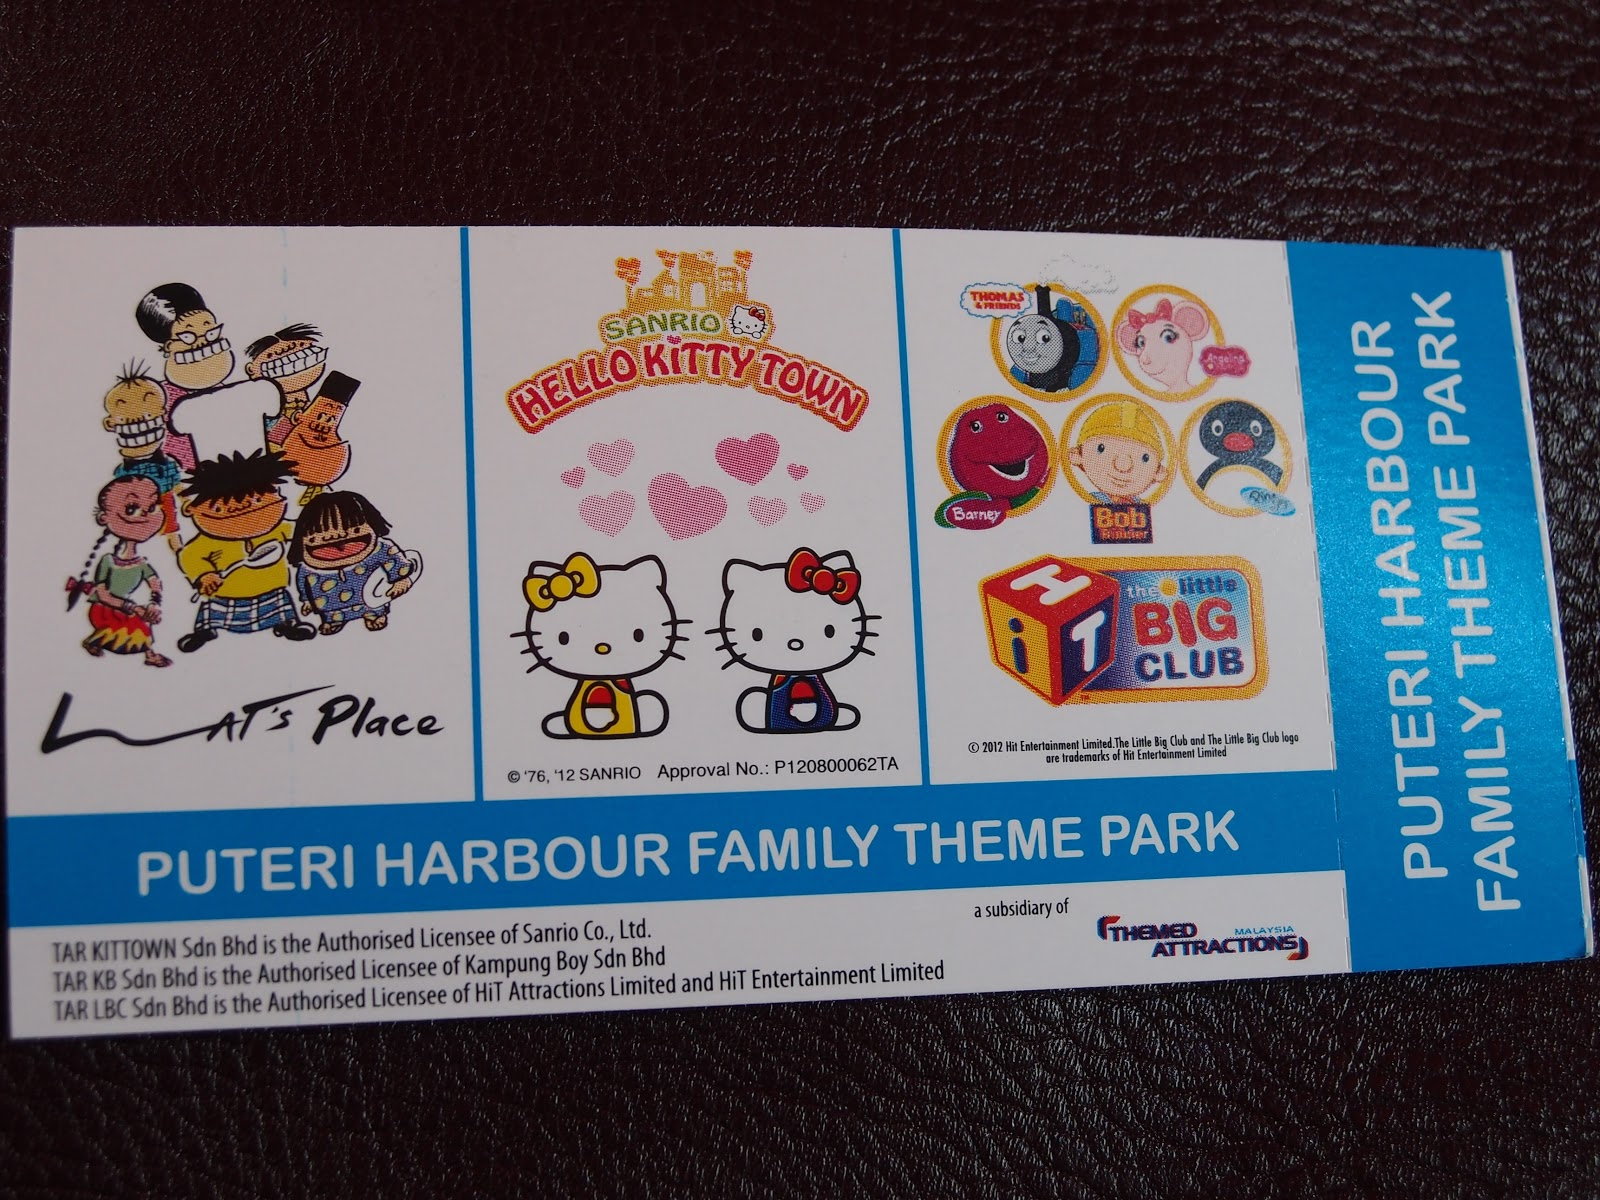 Hello kitty town puteri harbour family theme park johor bahru malaysia - We Passed By Legoland Before Reaching The Hello Kitty Town Both Themeparks Are Located Very Near To Each Other About 5 Minutes Drive Away